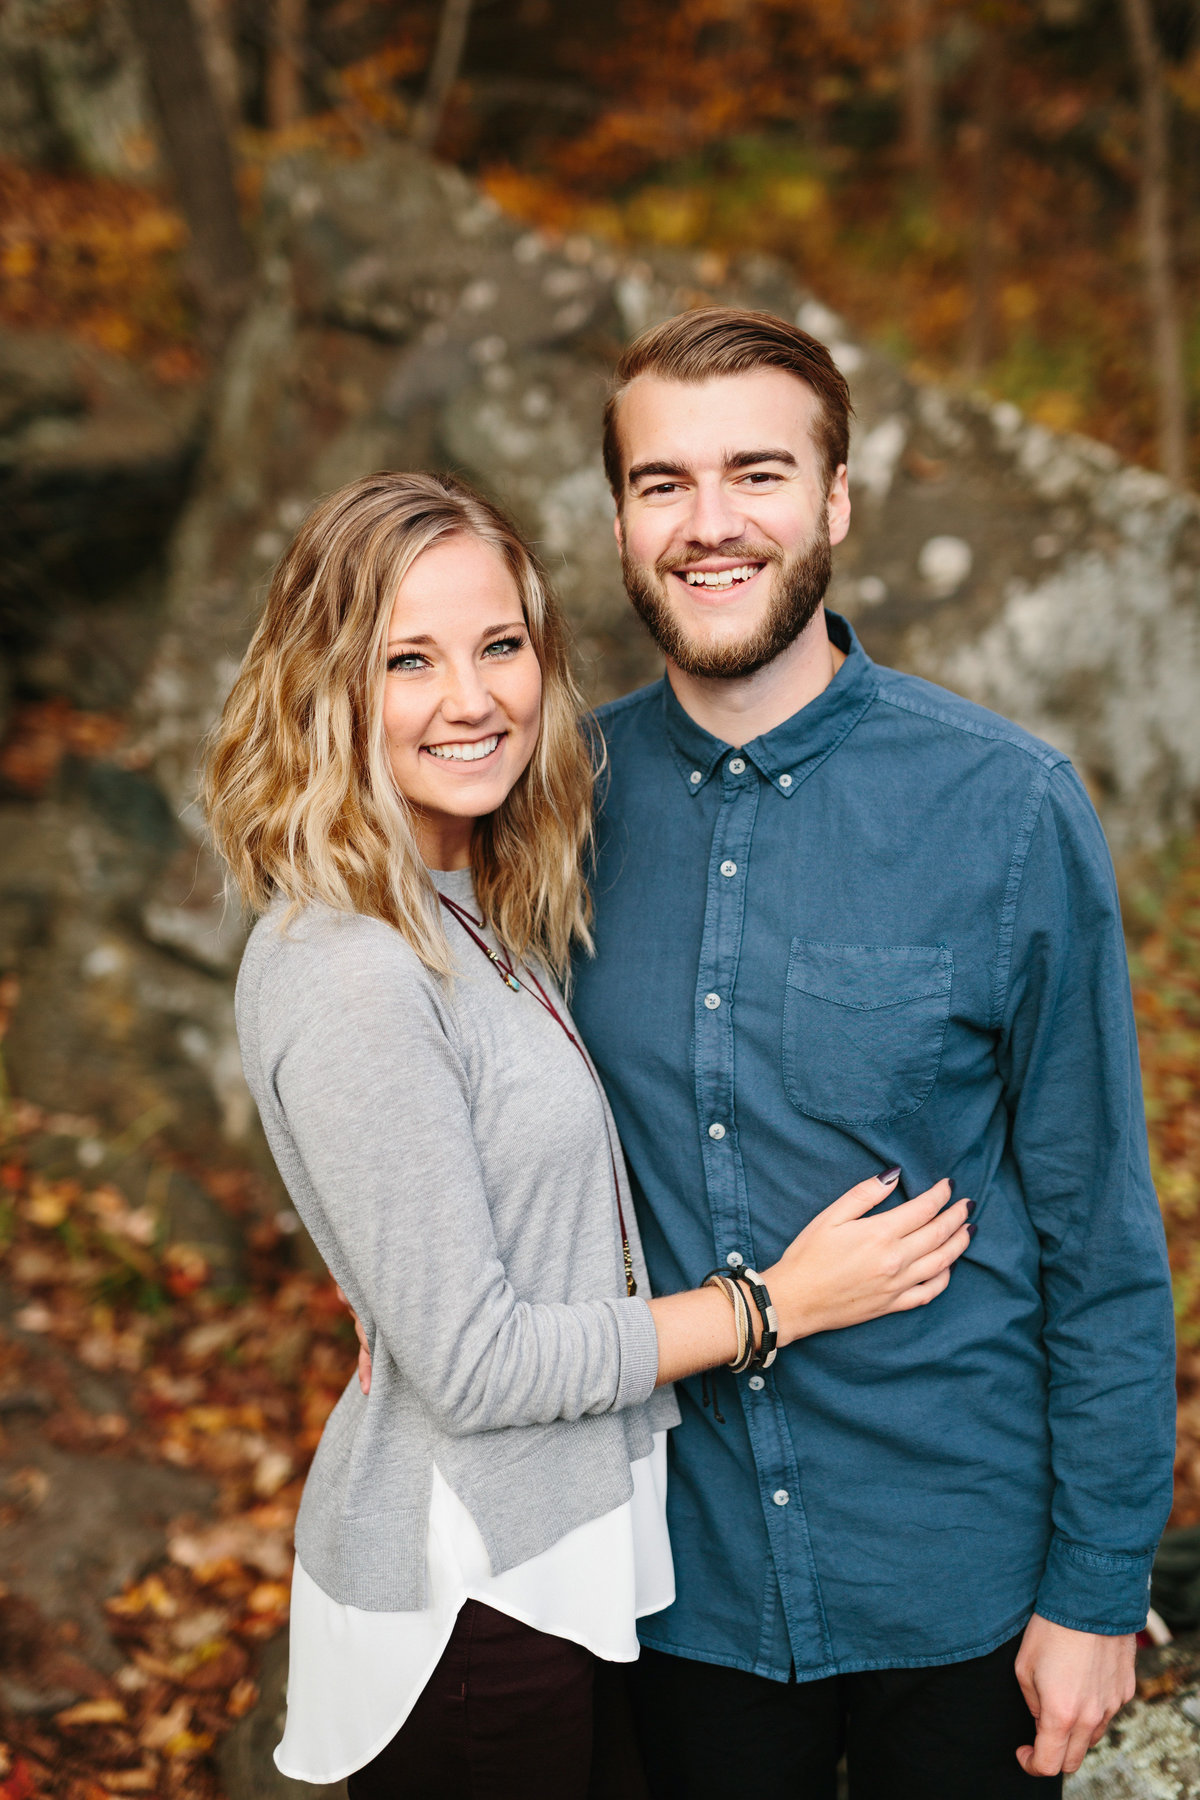 Taylors-Falls-Minneapolis-Fall-Engagement-15